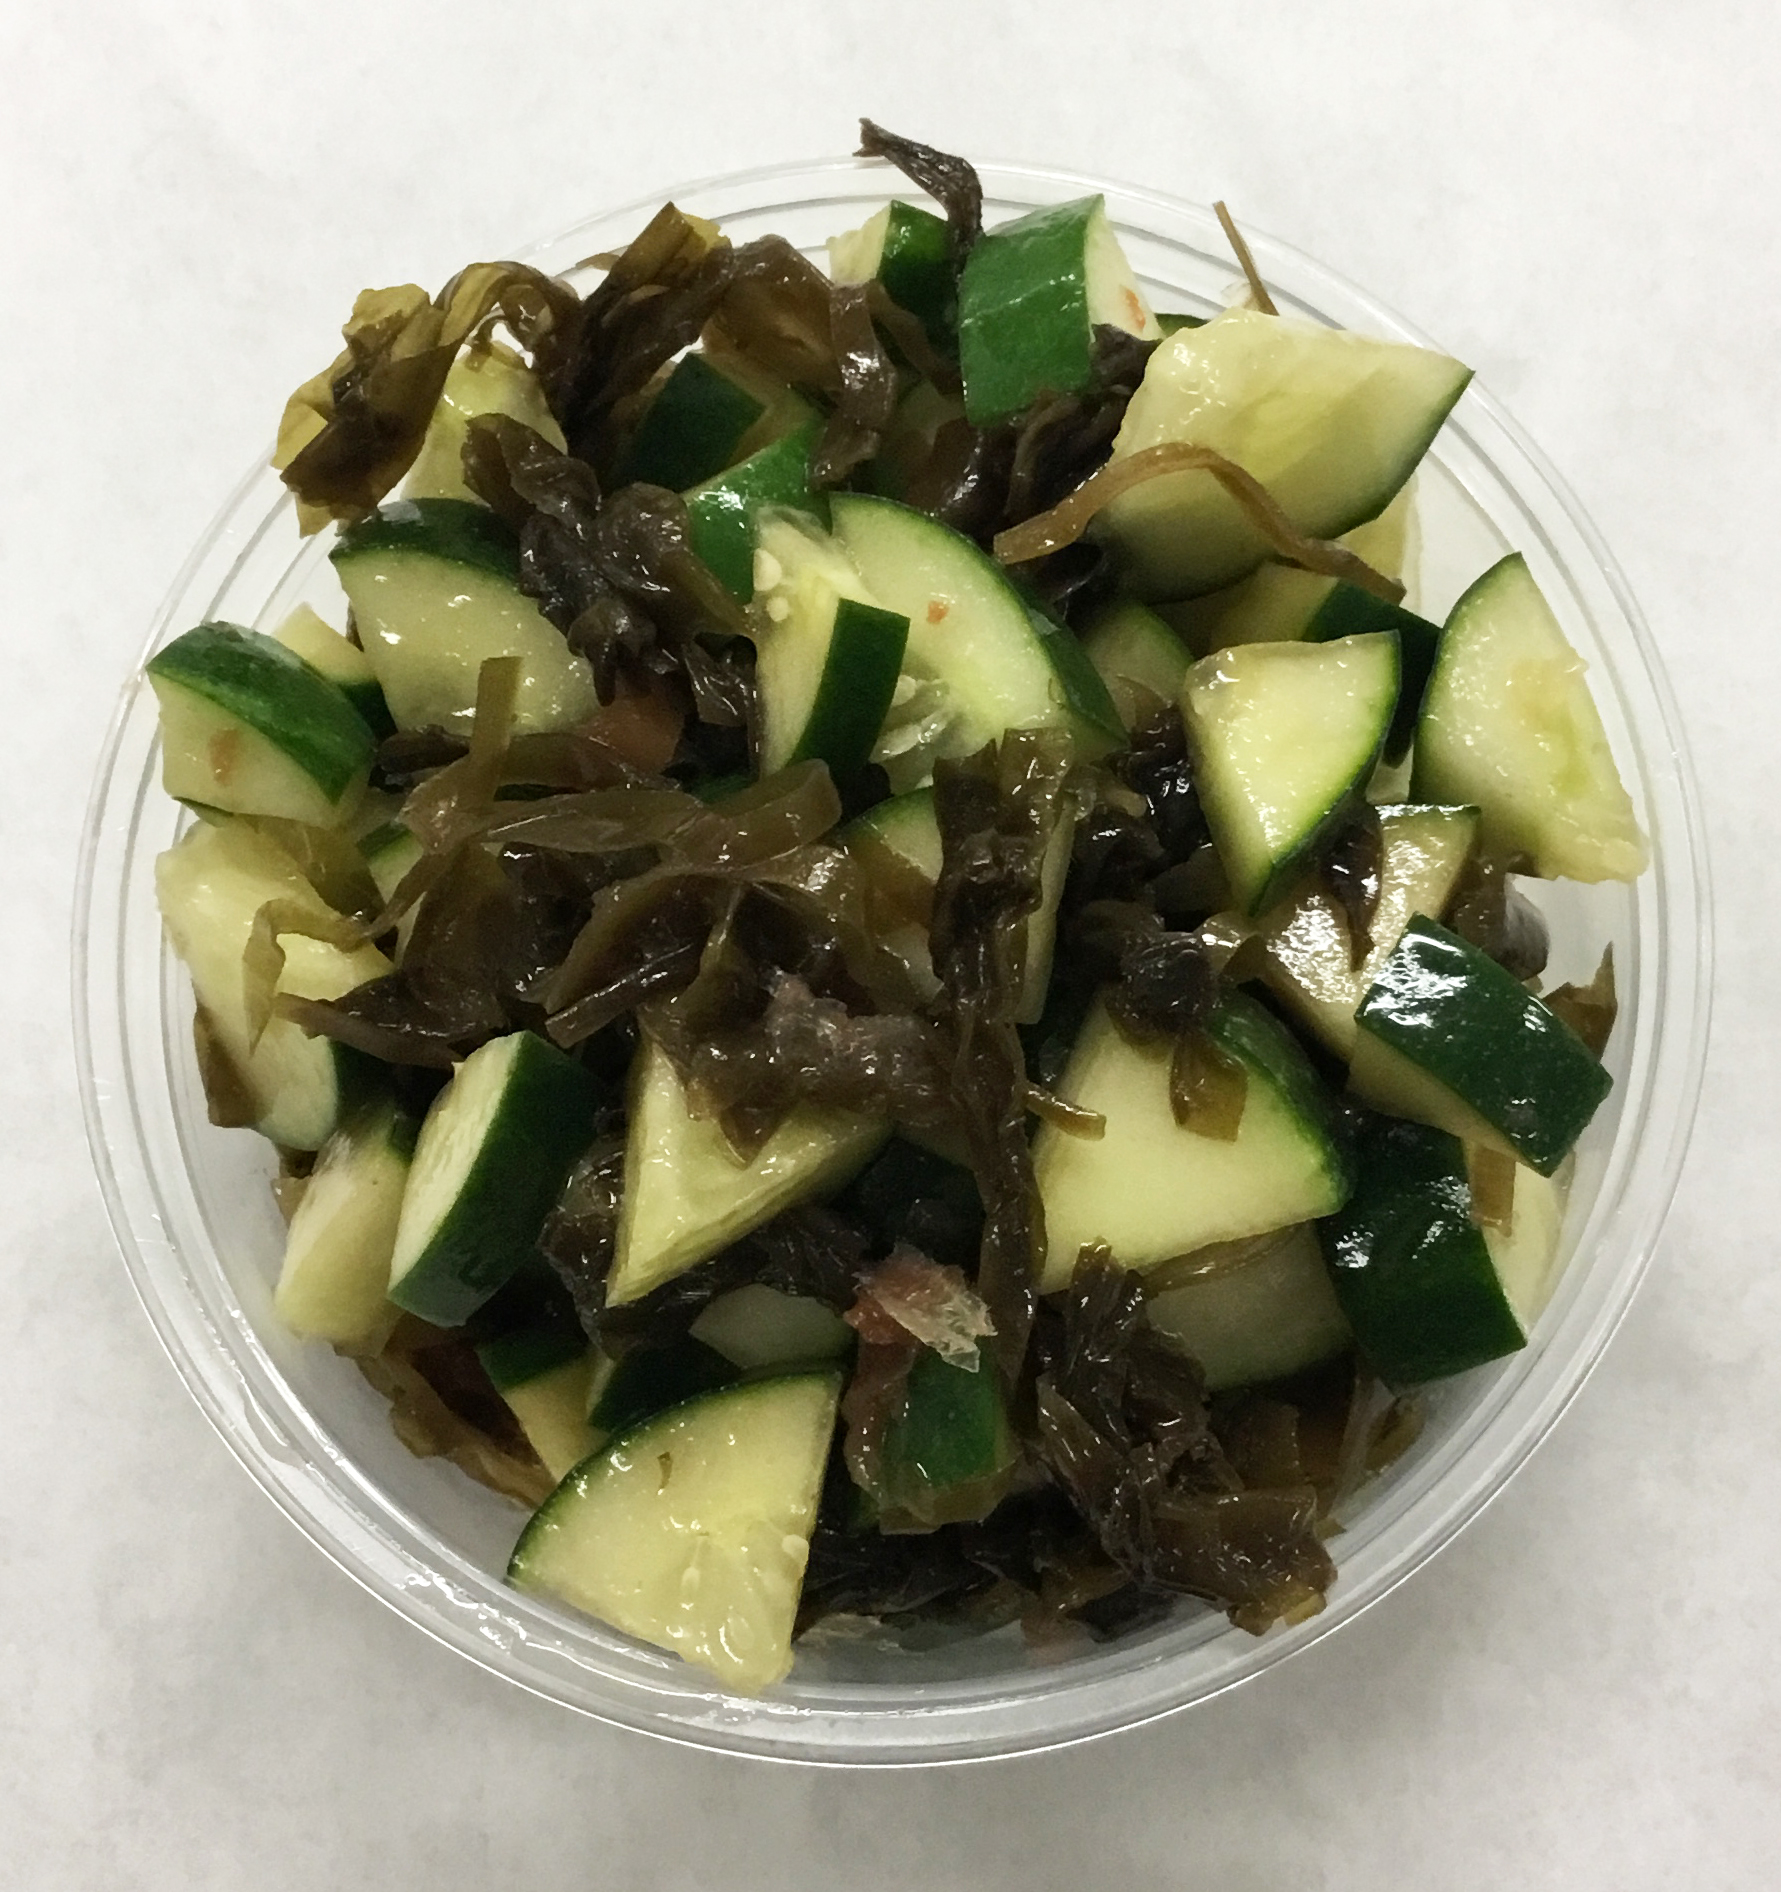 Cucumber and seaweed salad.